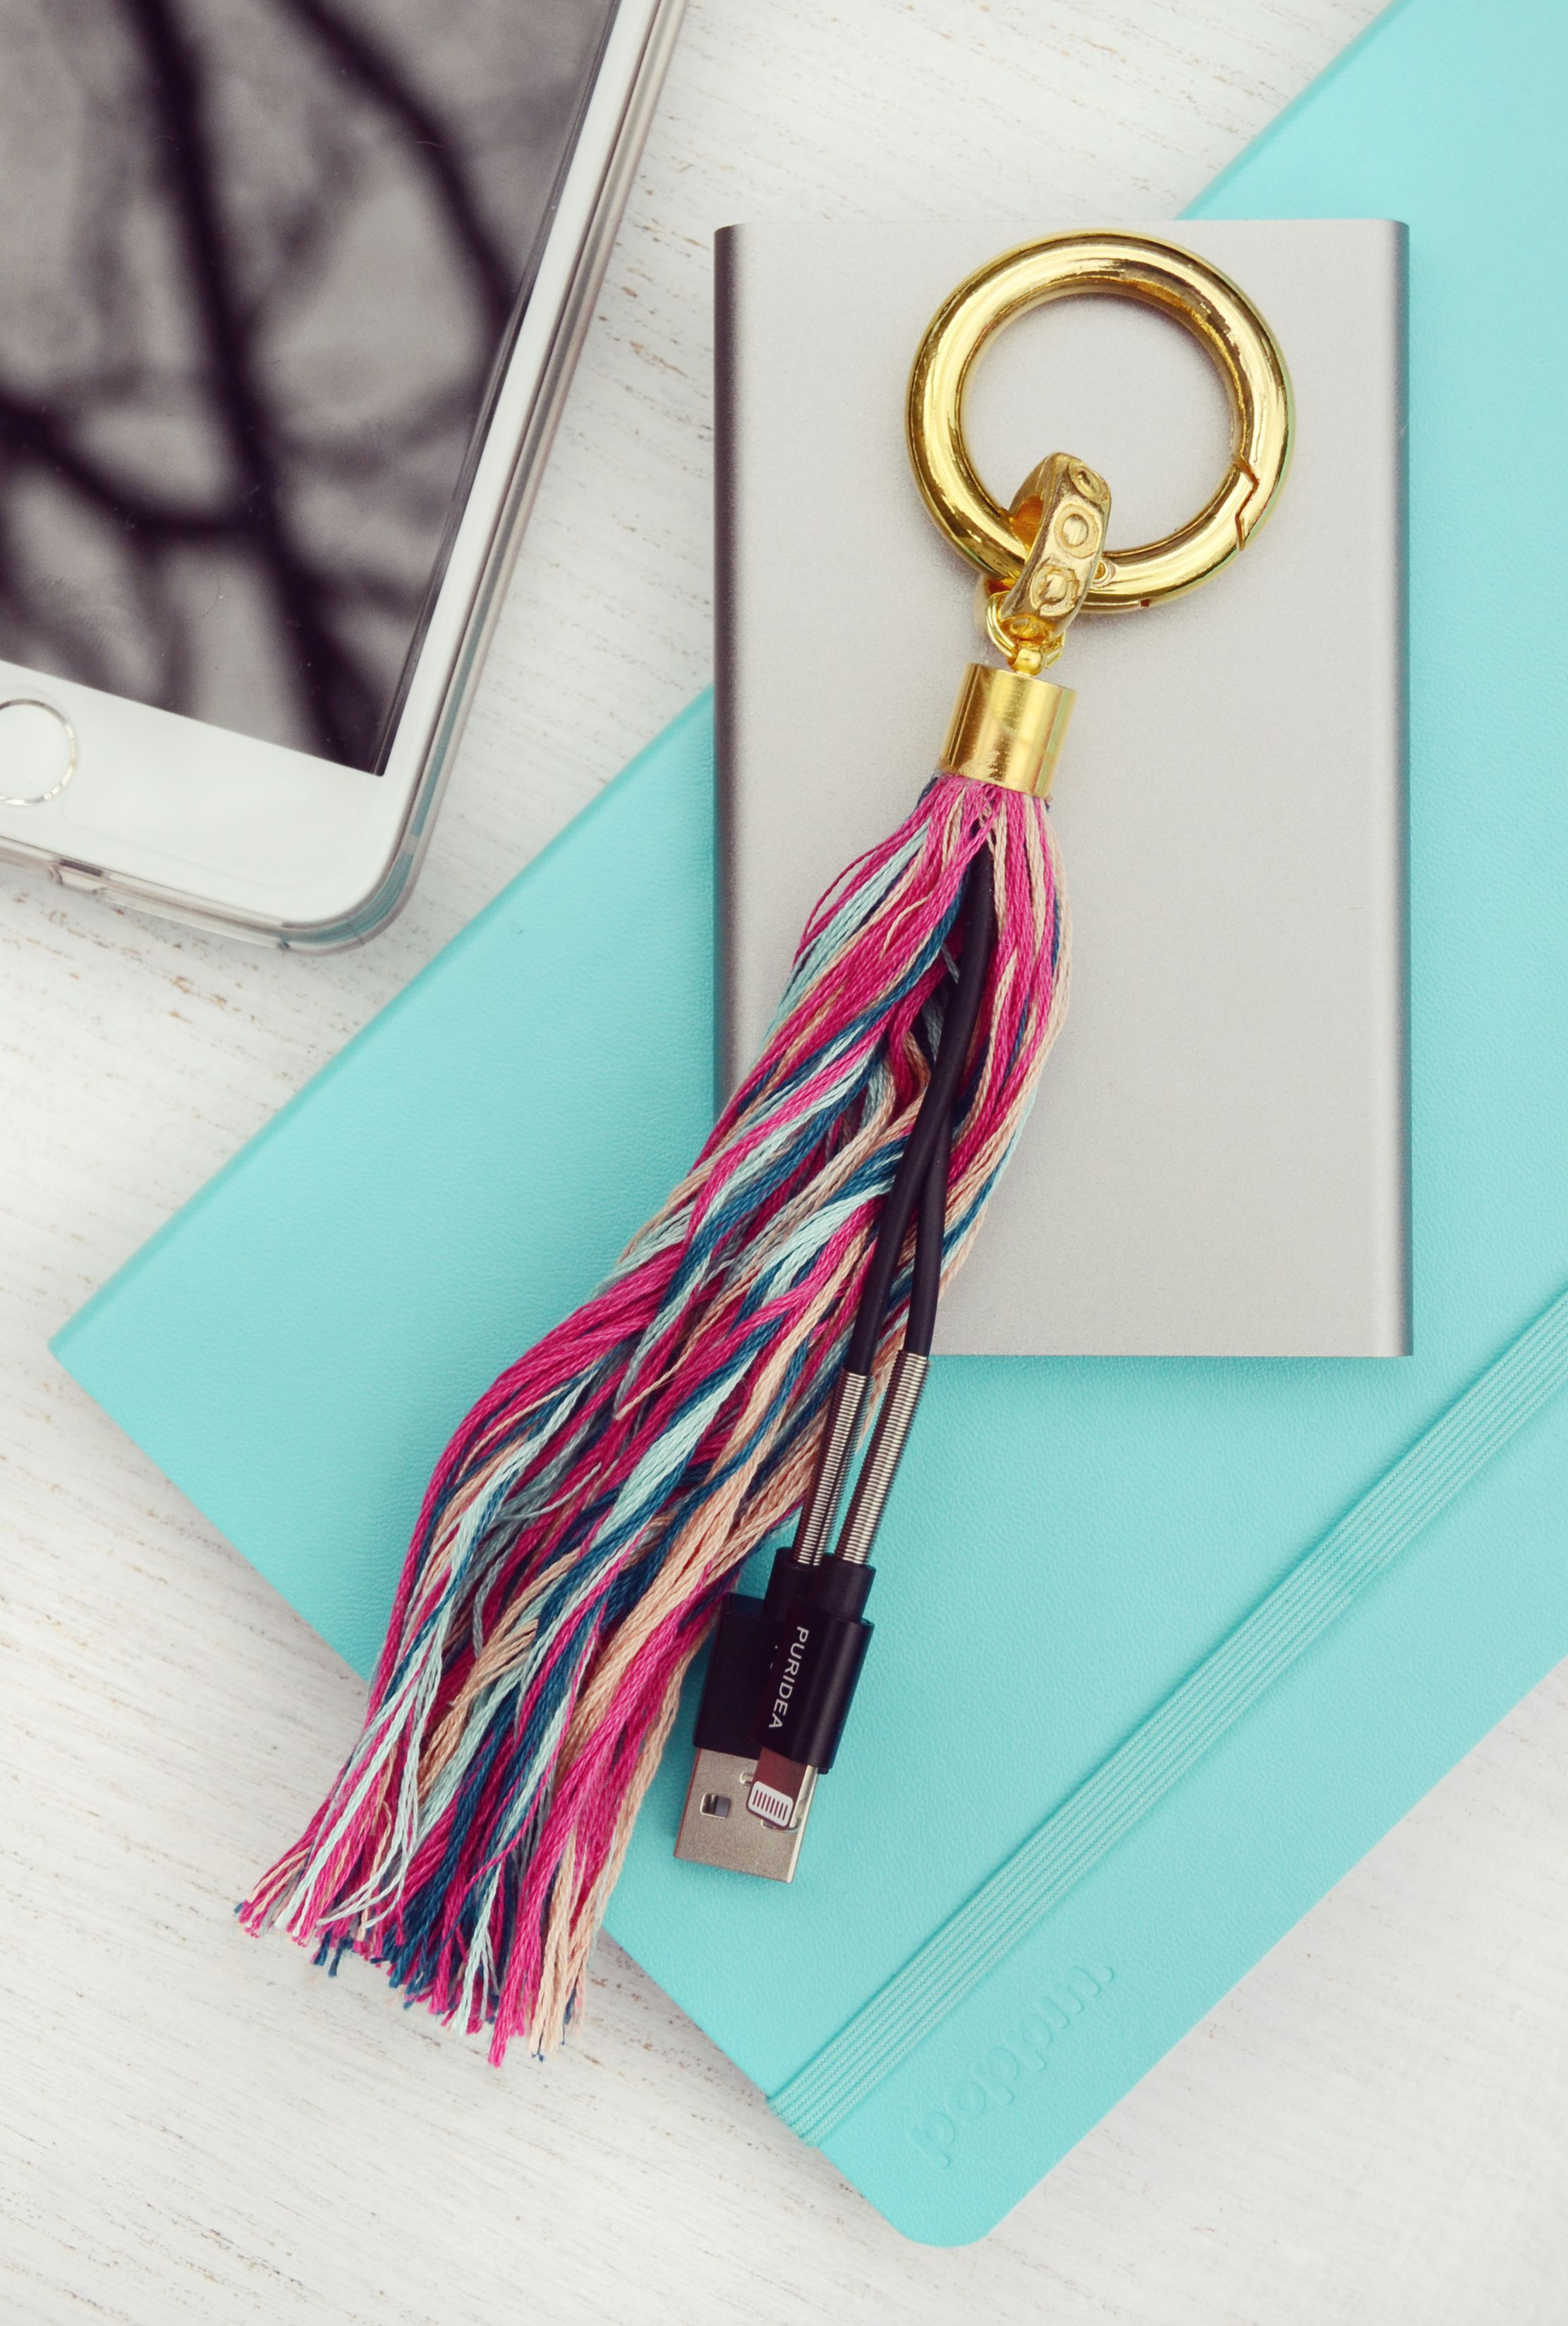 Easy Diy Phone Charging Cable Tassel Colorful Crafts By Design Fixation Diy Leather Tassel Keychain Diy Phone Diy Leather Tassel